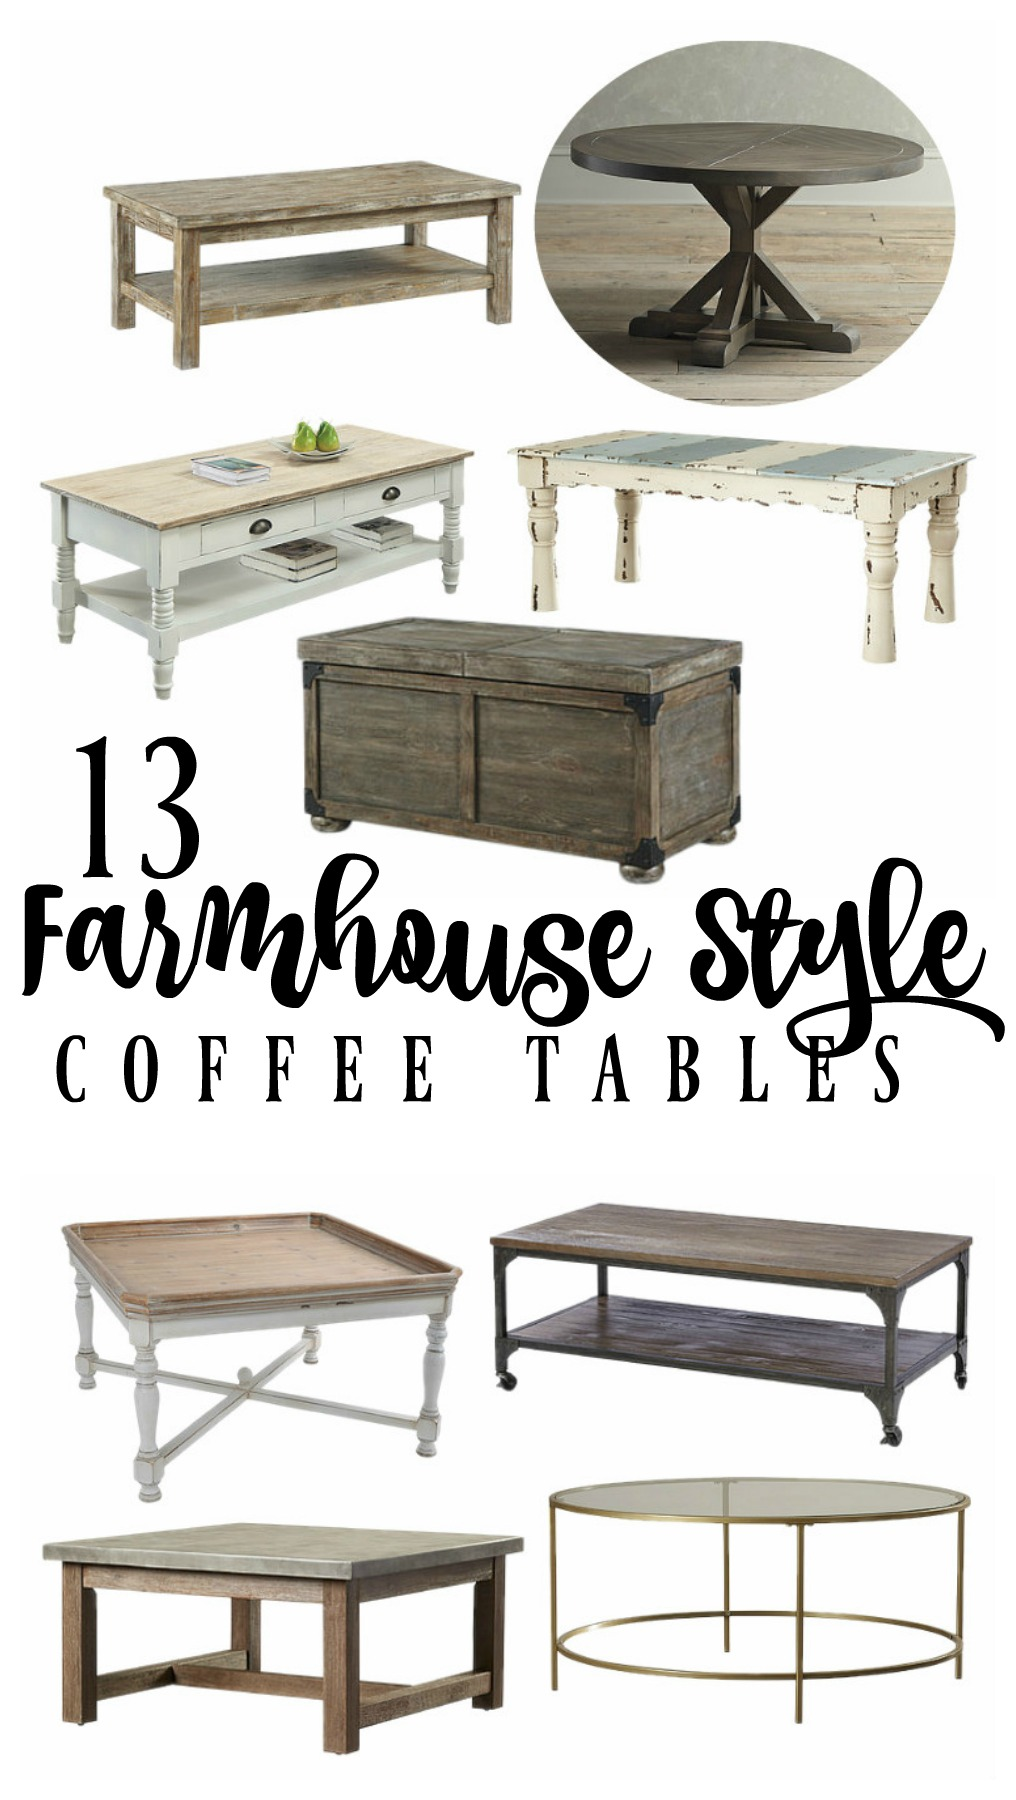 Farmhouse style coffee tables rooms for rent blog Farm style coffee tables